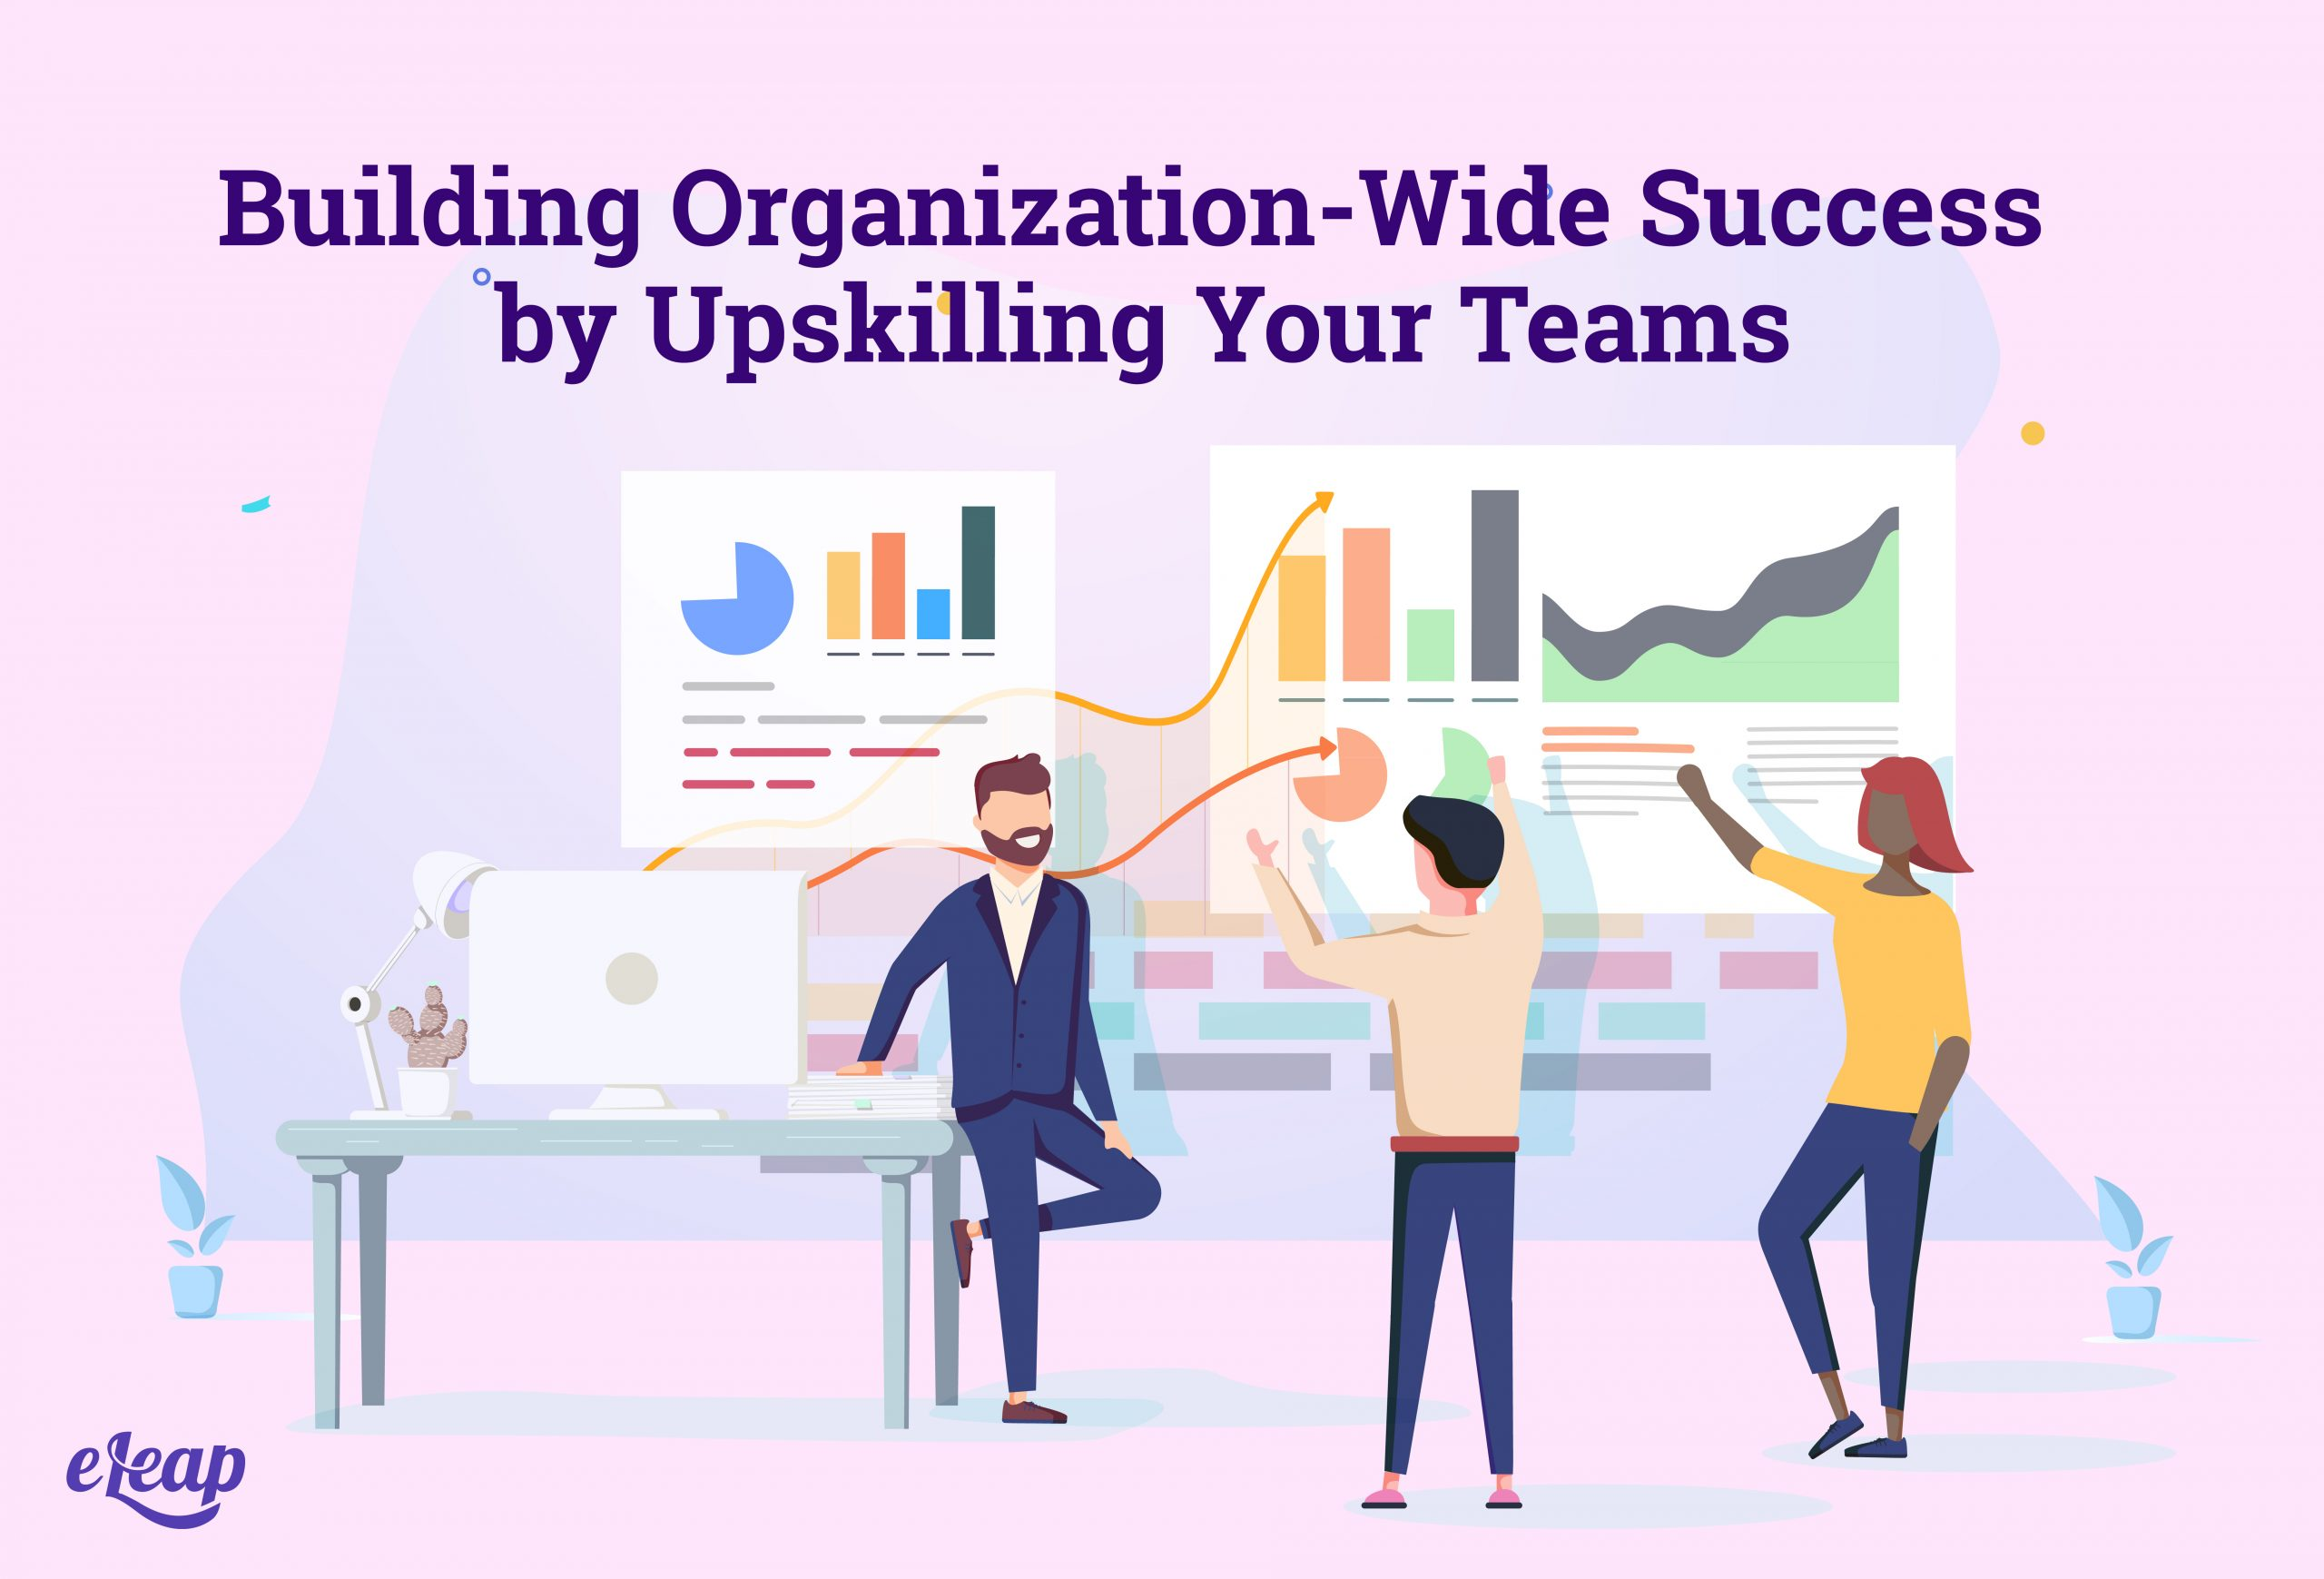 Building Organization-Wide Success by Upskilling Your Teams